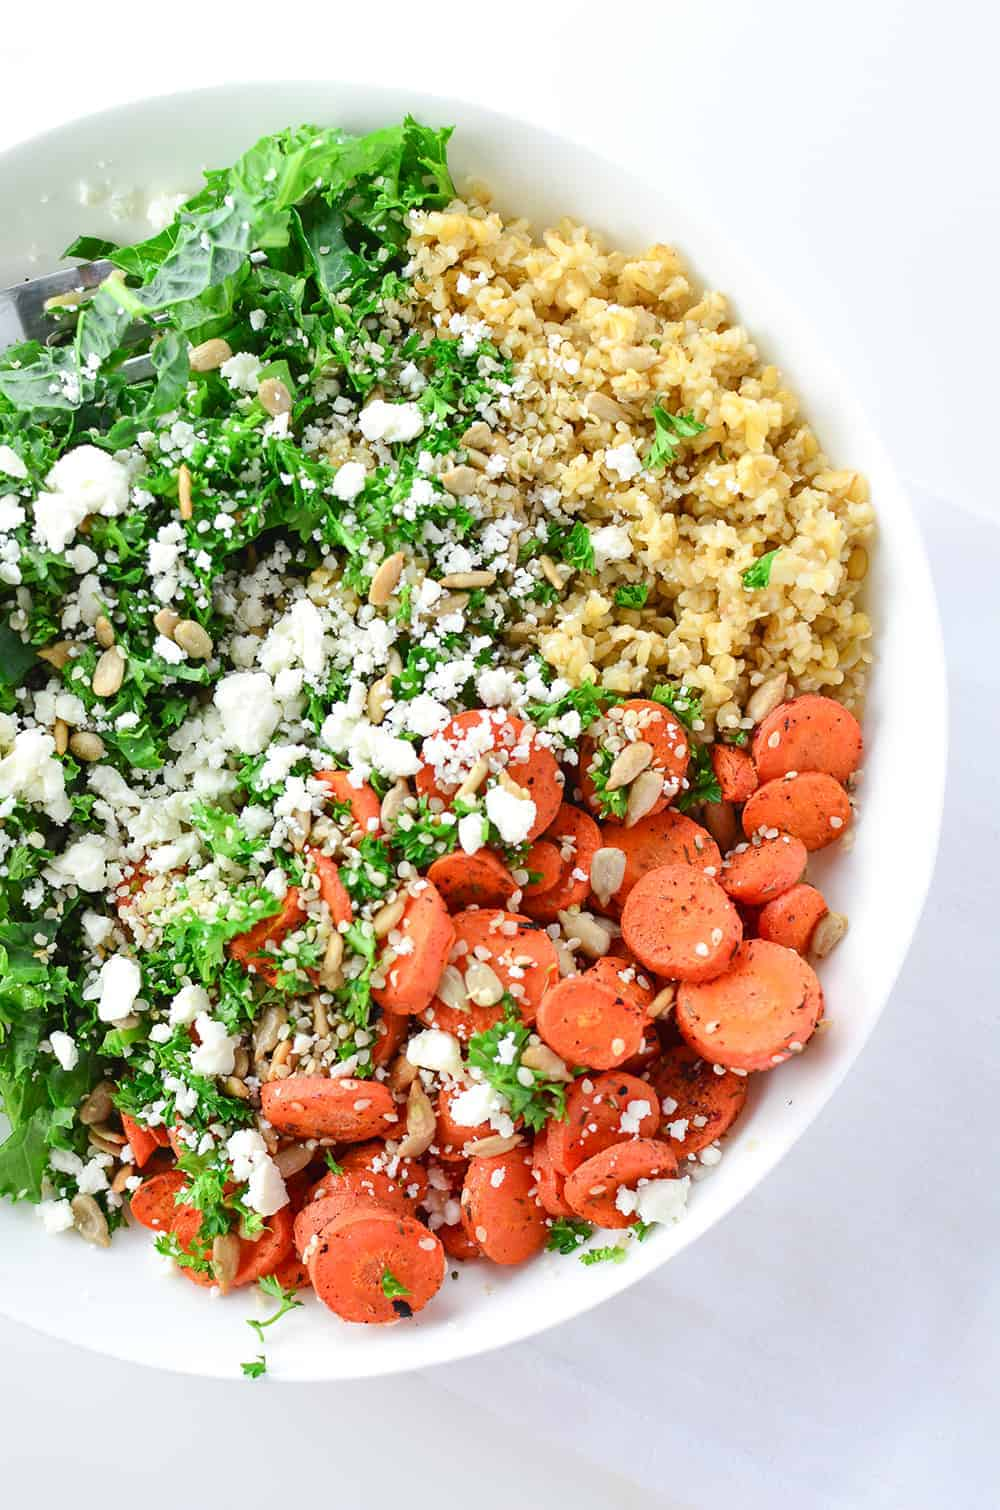 The Ultimate Goddess Bowl! Freekah, kale, roasted carrots, and a creamy goddess dressing! This healthy grain bowl is so easy and packed with flavor! | www.delishknowledge.com